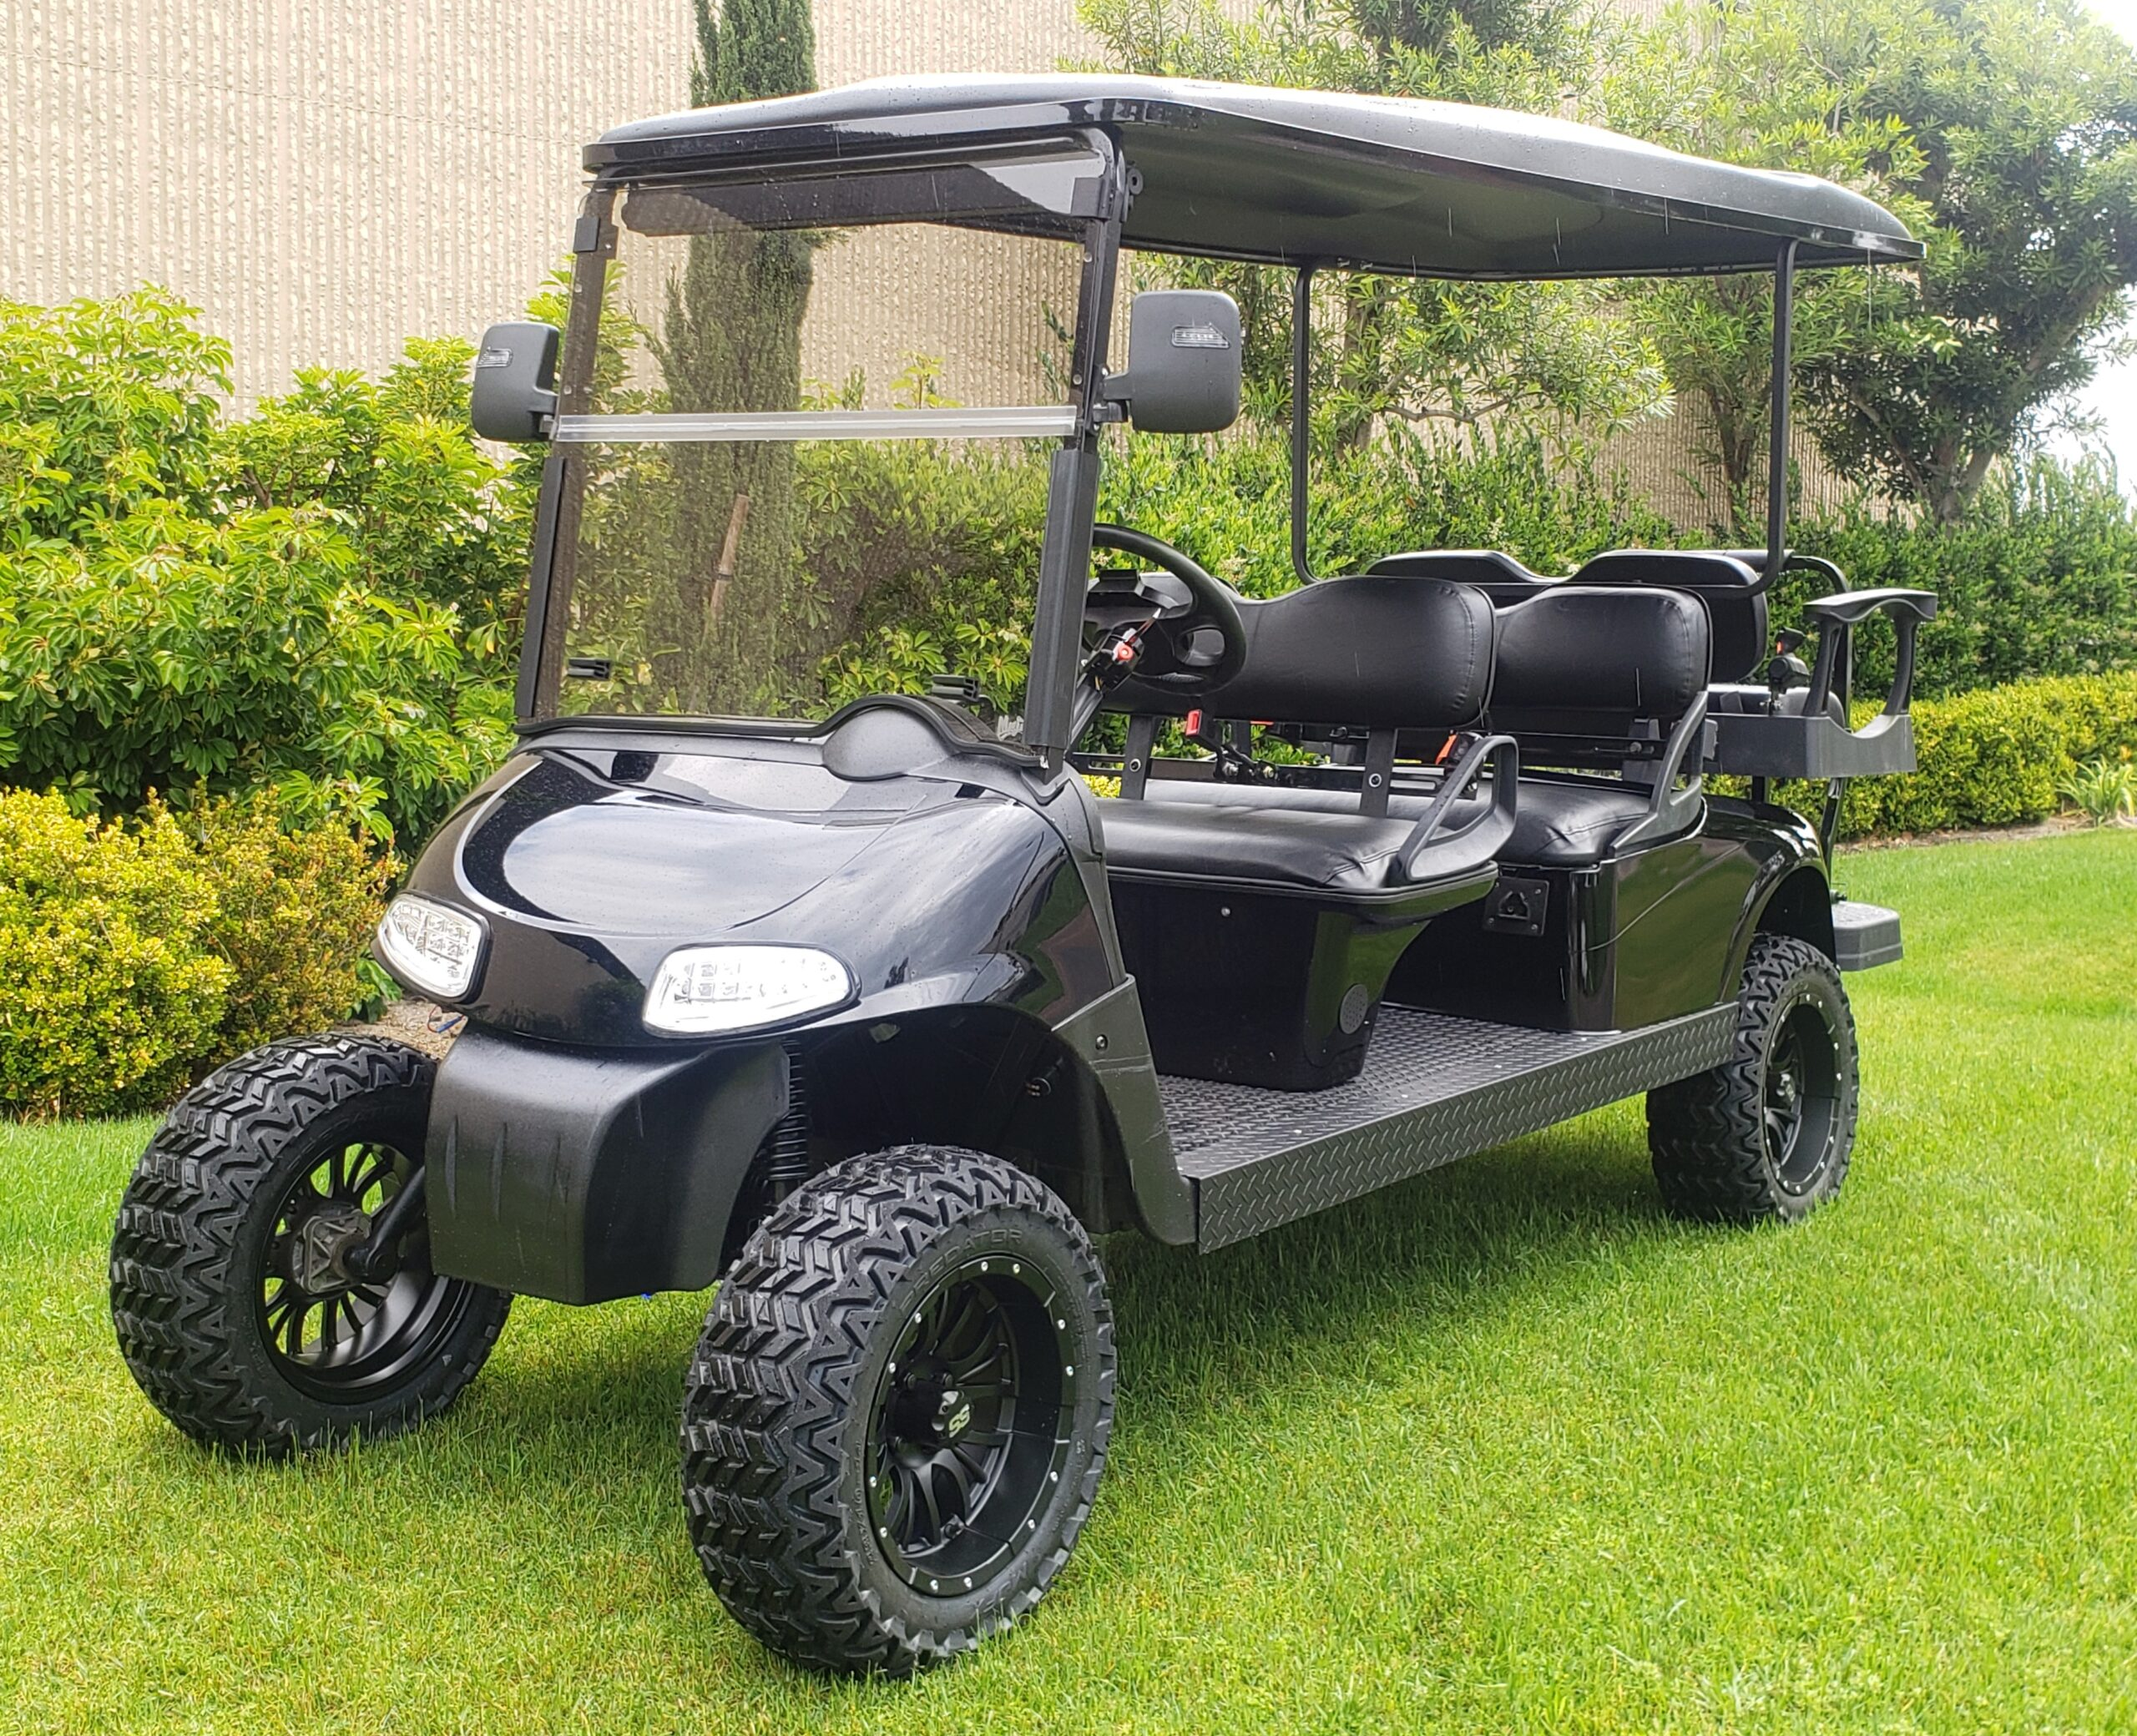 Murdered Out Ezgo Rxv Stretched Lifted Limo Electric 6 Passenger Golf Cart